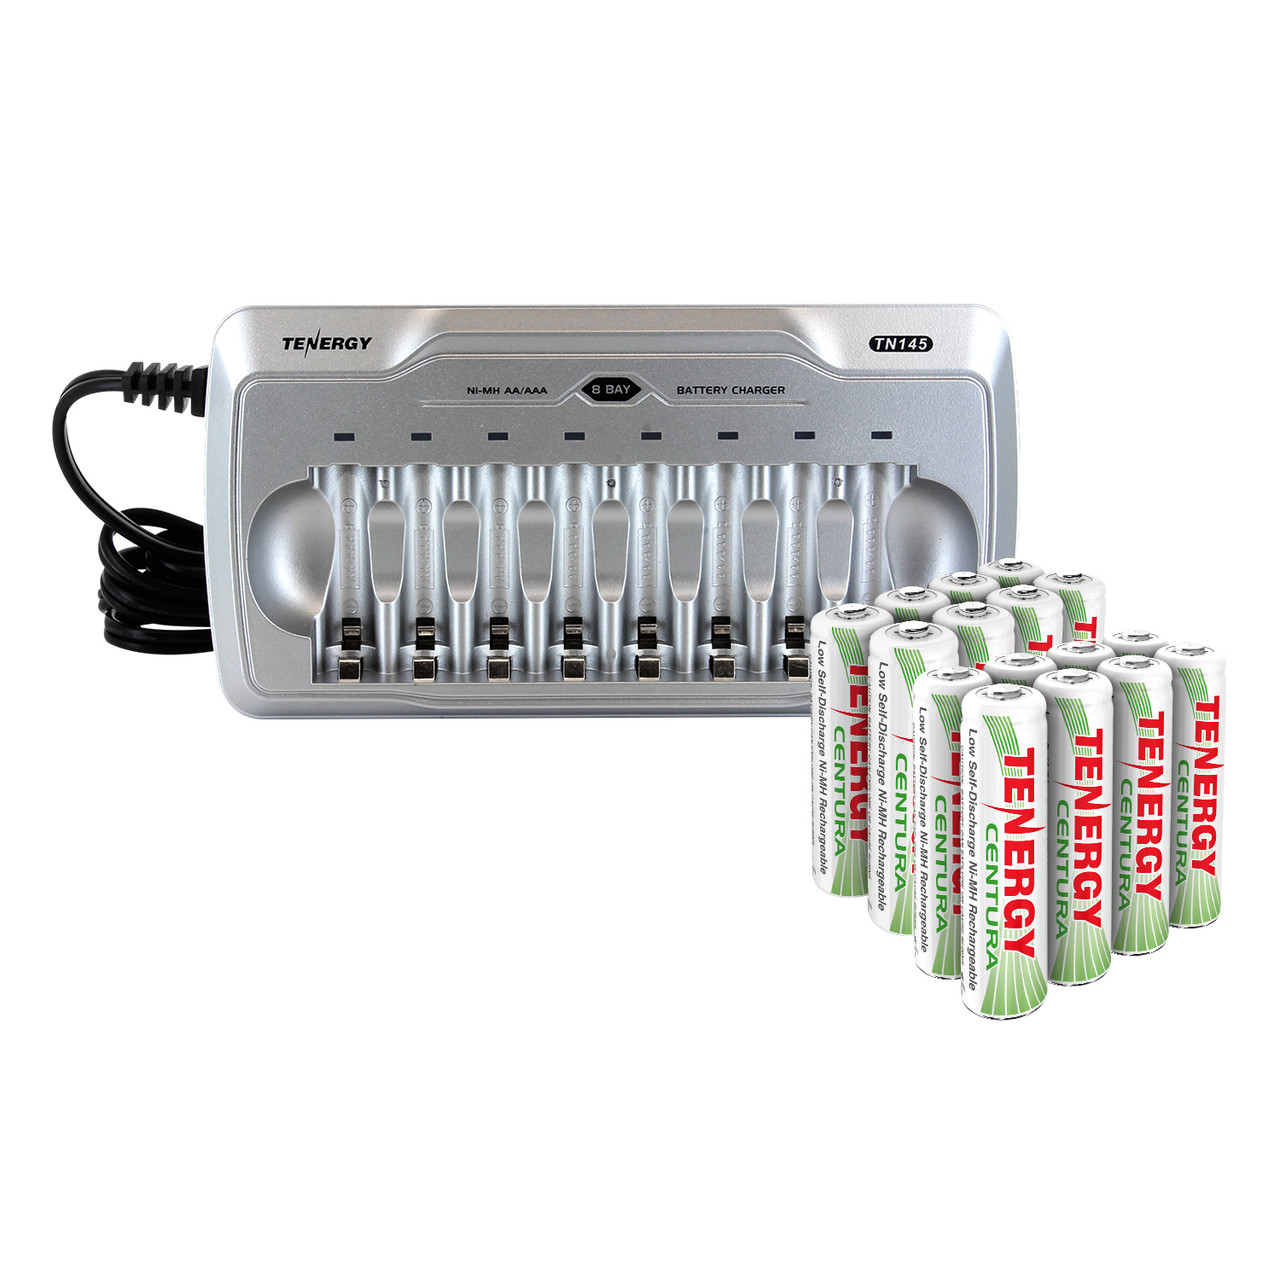 Combo: Tenergy TN145 8-Bay AA/AAA NiMH Battery Charger + 2 AA & 2 AAA Cards of Centura Batteries